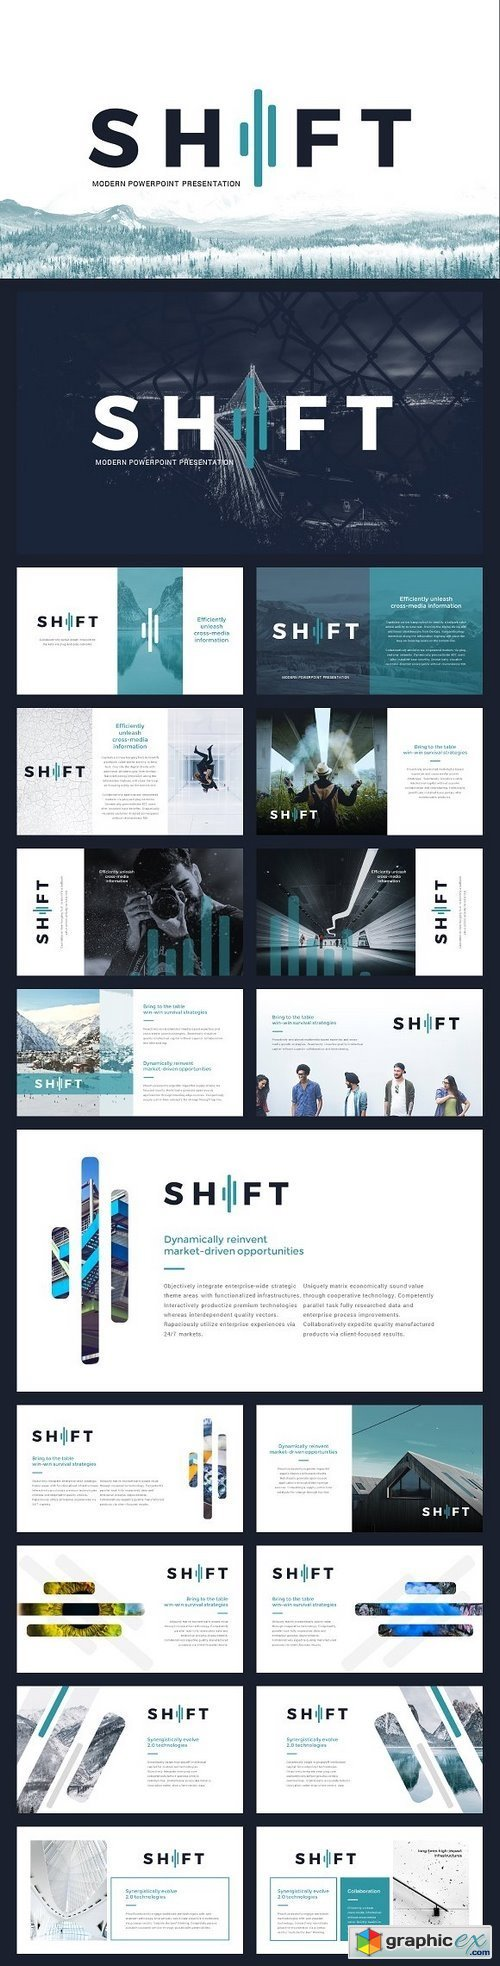 Shift Modern Powerpoint Template » Free Download Vector